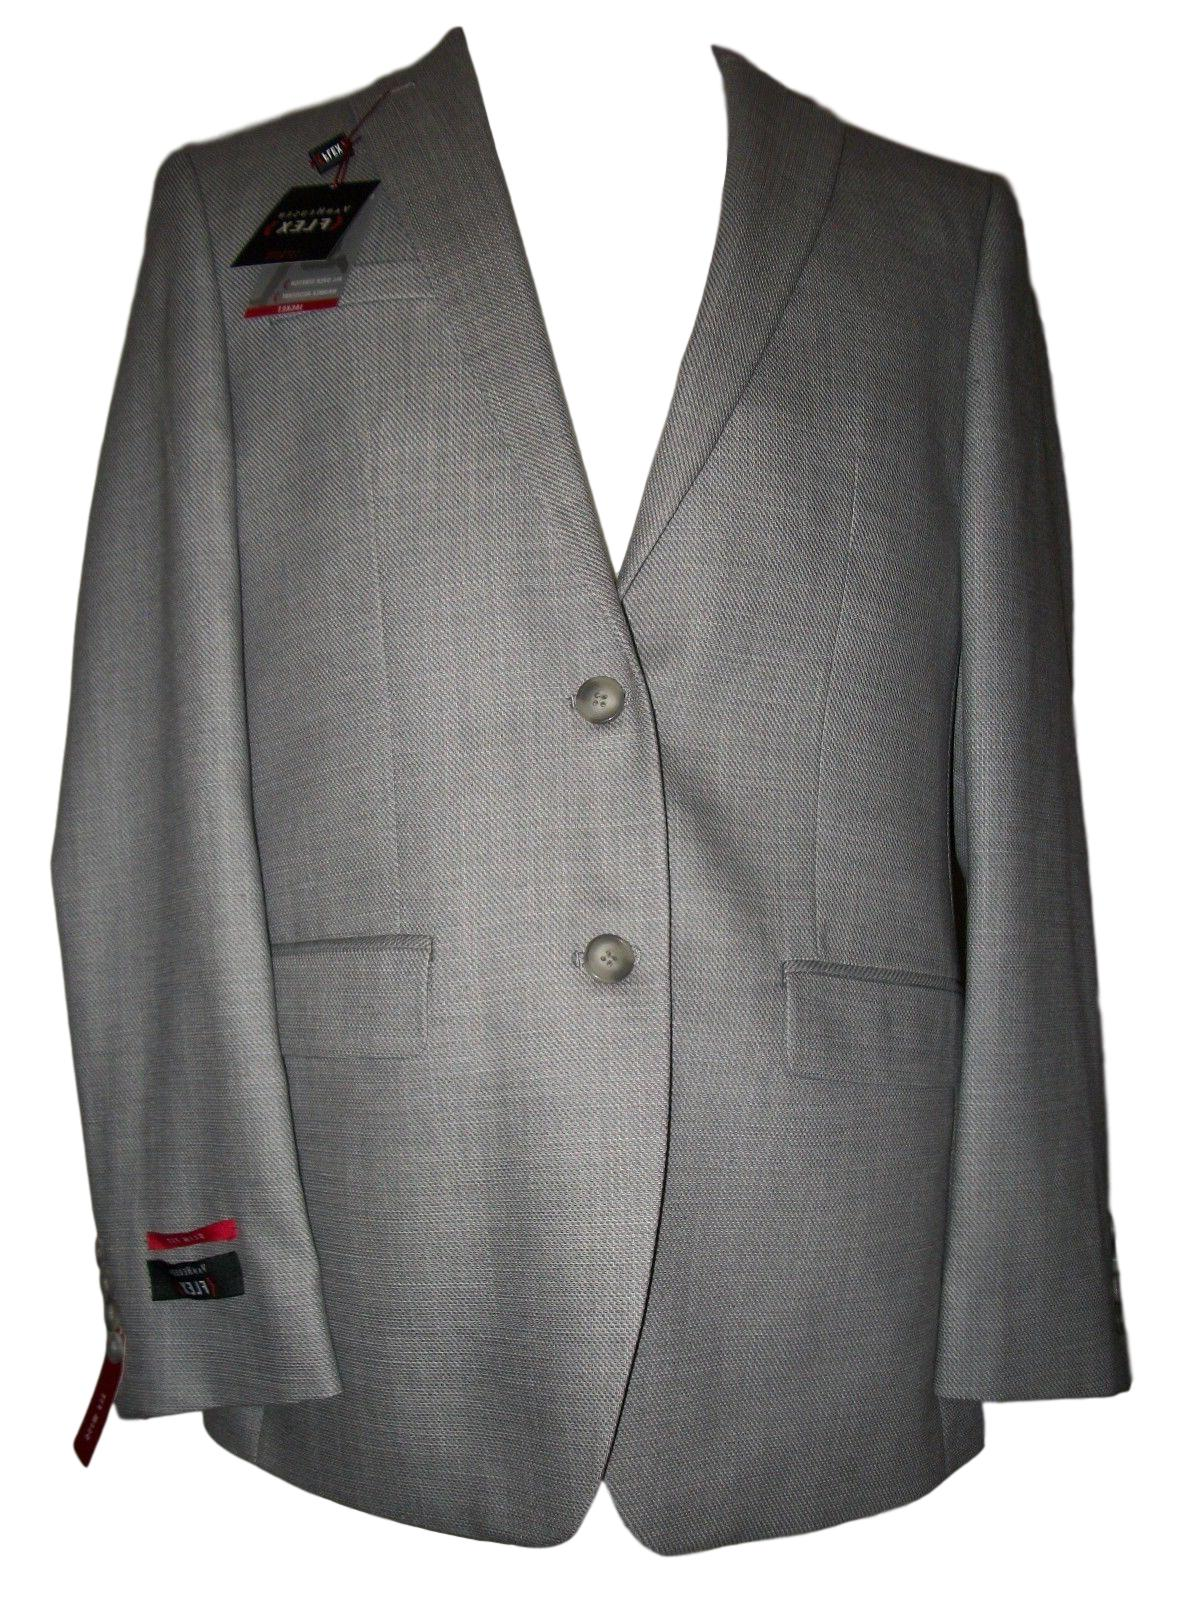 NEW NWT Men's VAN HEUSEN Flex Grey Slim Fit Suit Jacket Coat